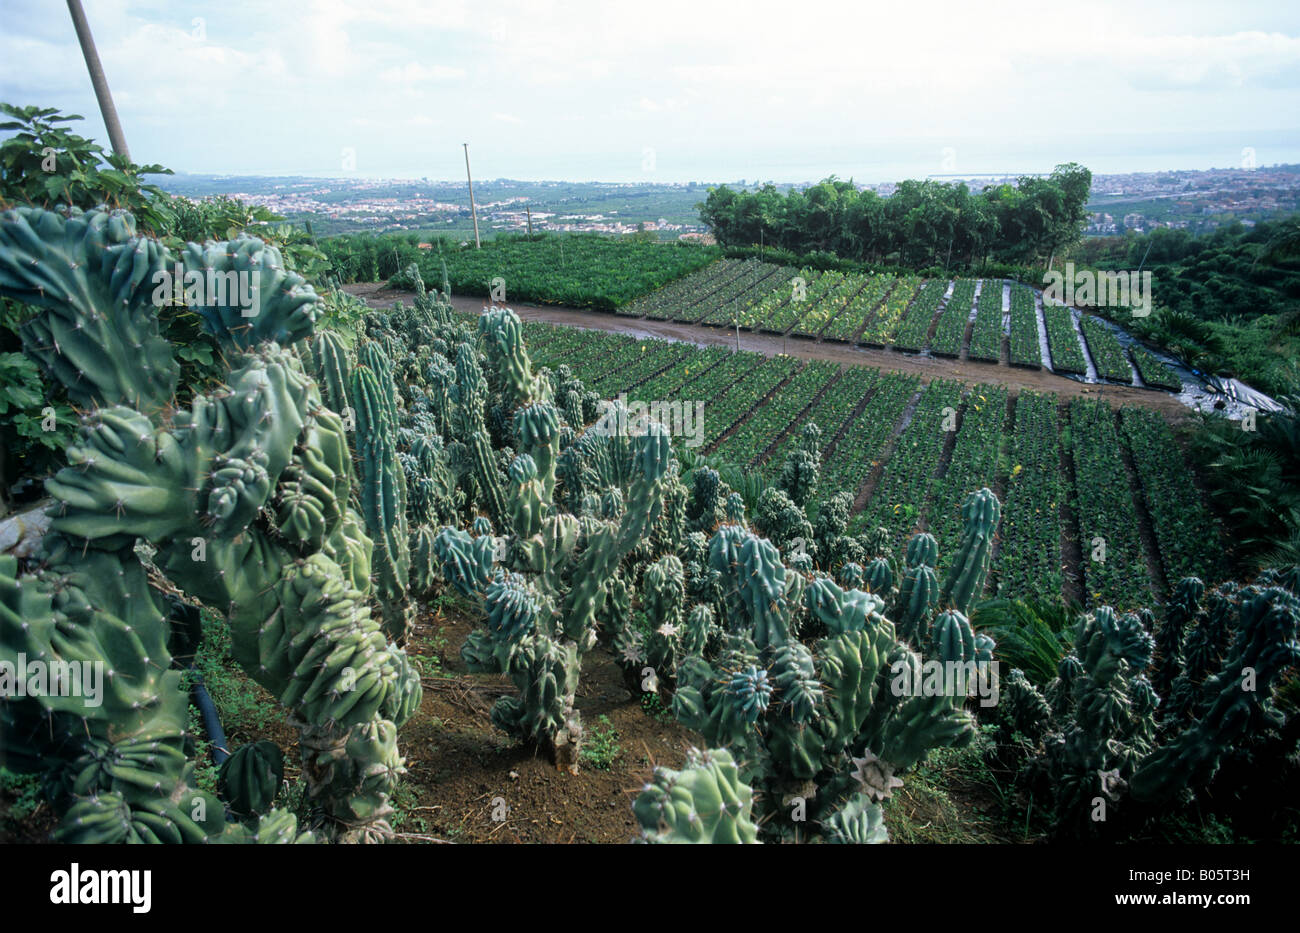 Sicilian foliage plant nursery with cacti and succulent plants - Stock Image